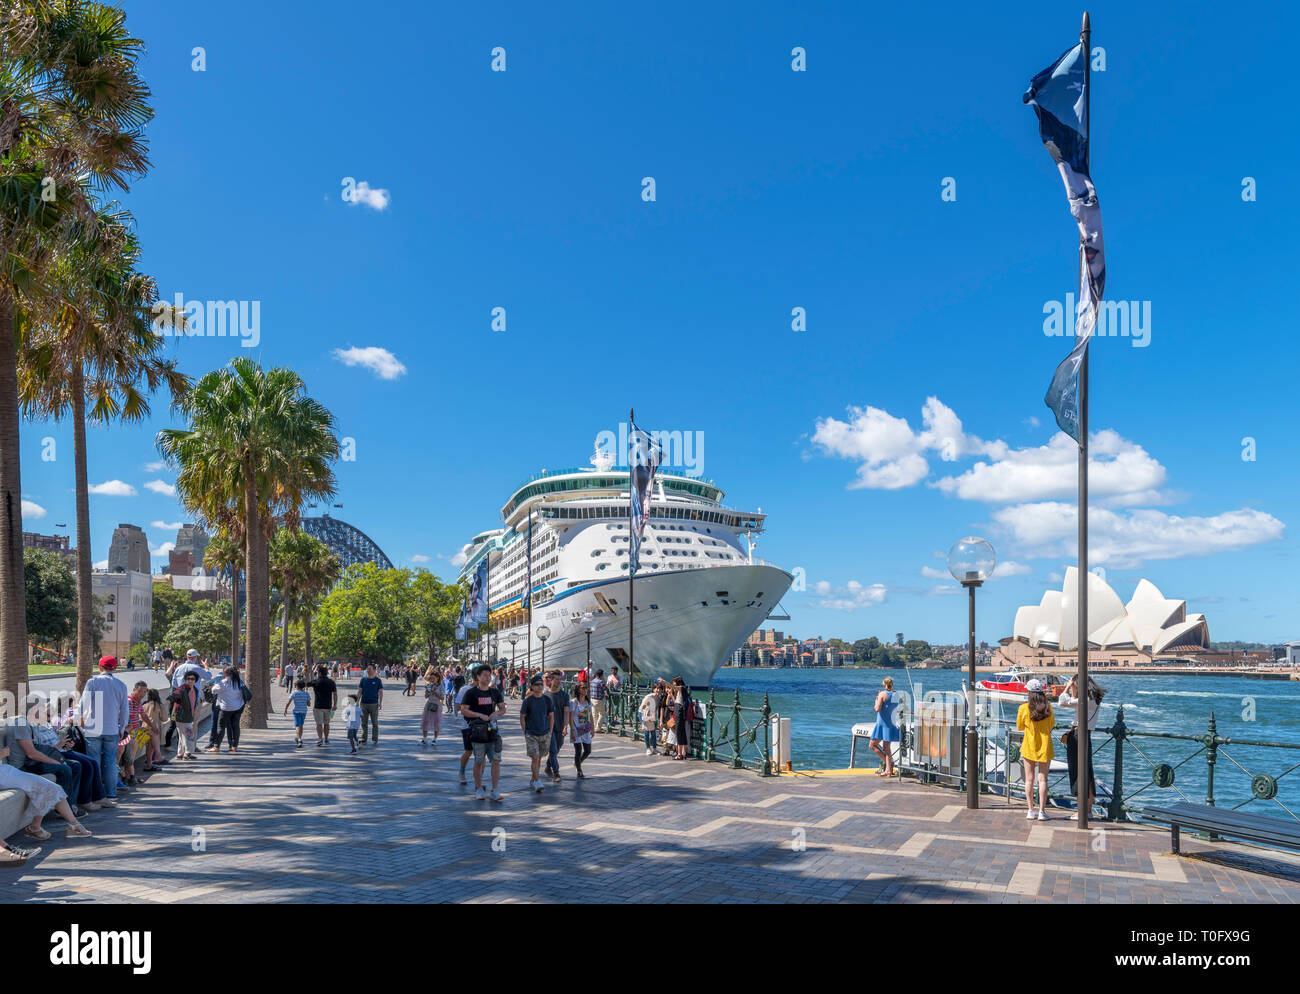 Circular Quay, Sydney. Explorer of the Seas cruise ship with Sydney Harbour Bridge to the left and Sydney Opera House to the right, Sydney, Australia - Stock Image